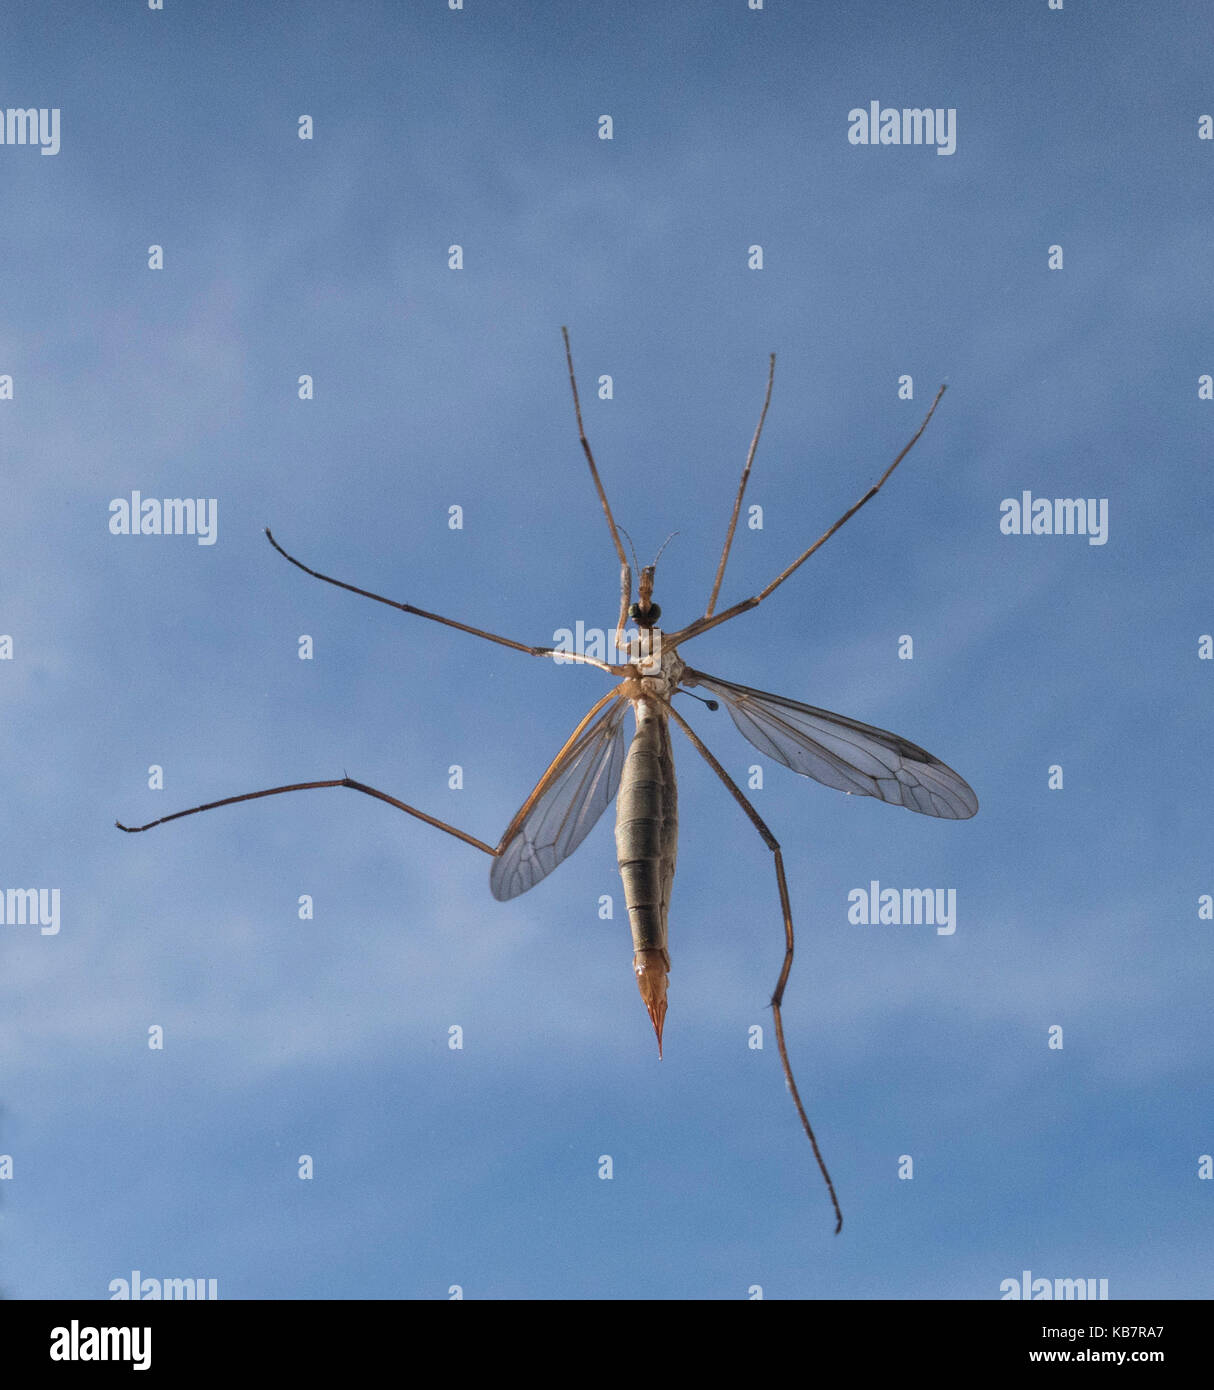 Crane fly  - a member of the insect family Tipulidae, of the order Diptera, true flies in the superfamily Tipuloidea. Stock Photo